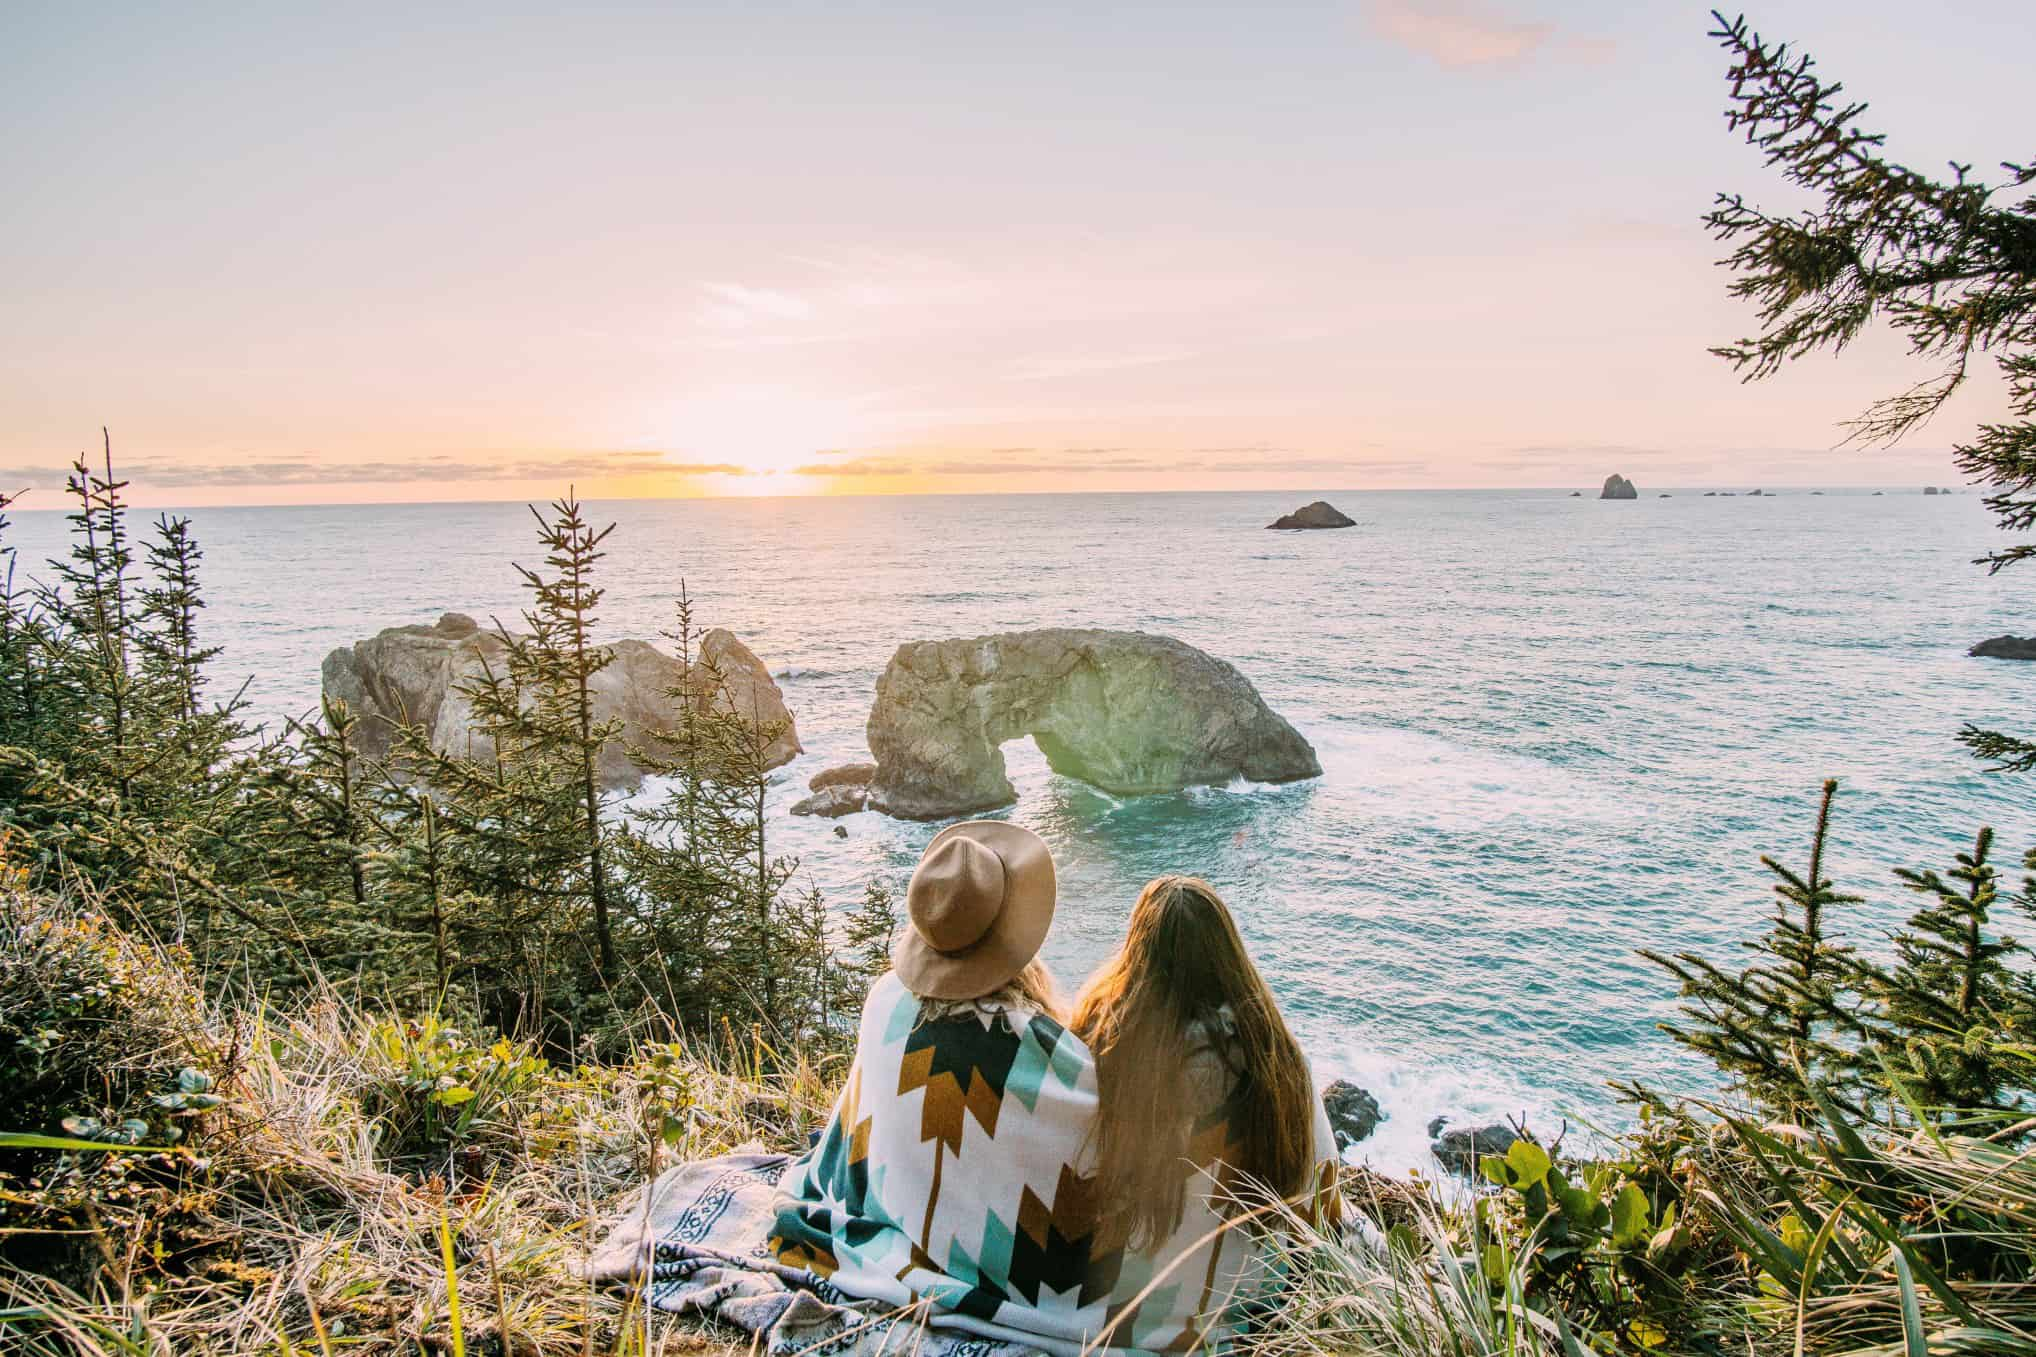 two-women-sitting-on-a-cliff-overlooking-the-ocean-watching-the-sunset_t20_WxxNW4